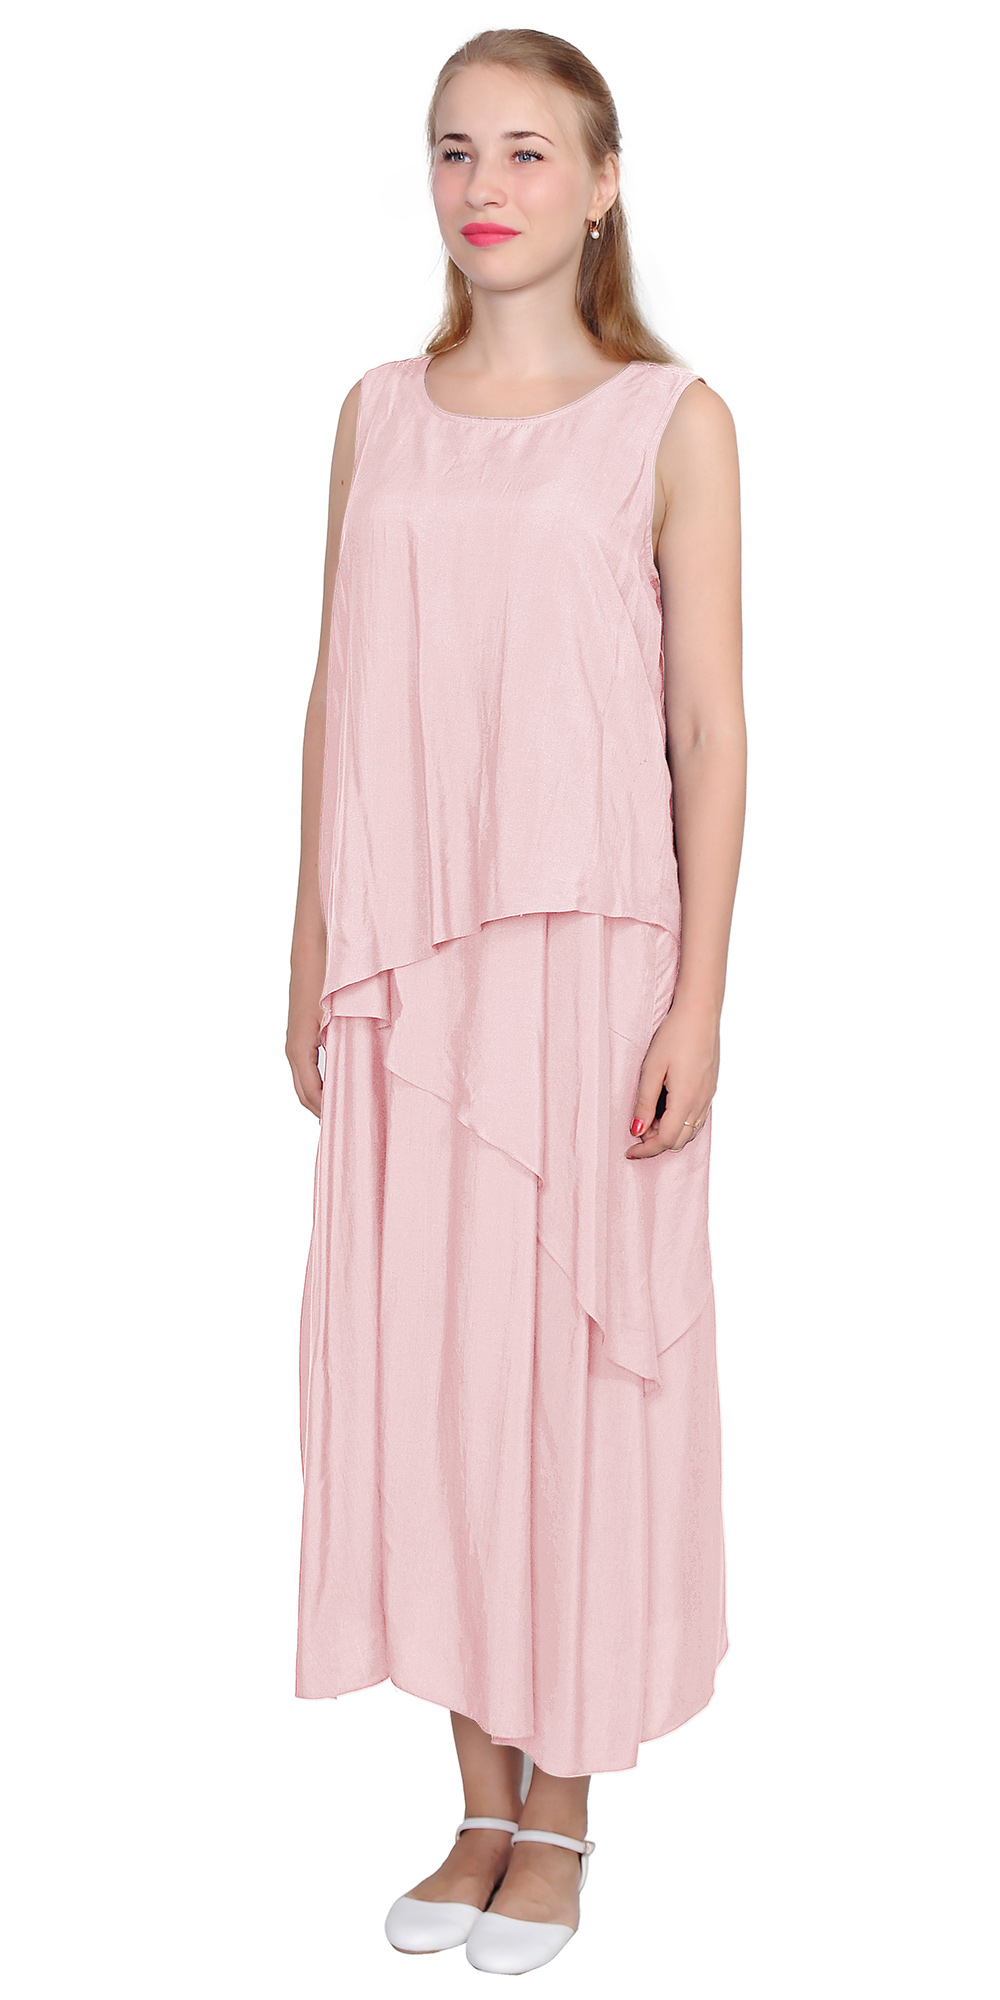 elegant linen dresses photo - 1